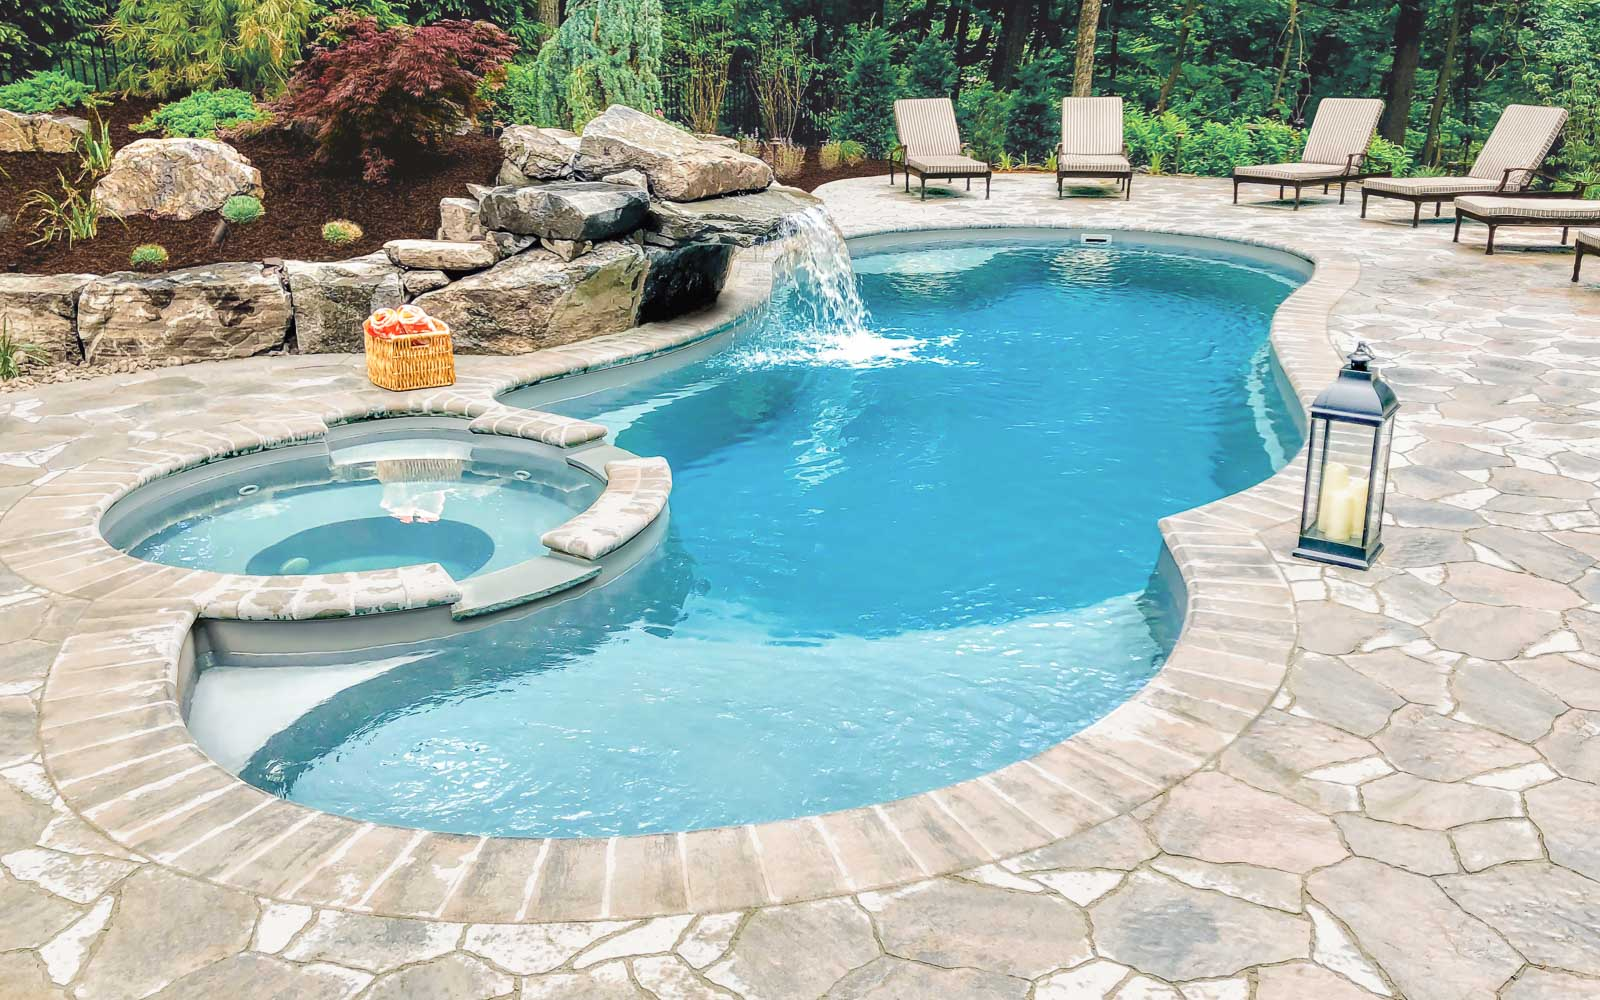 Leisure Pools Allure freeform fiberglass swimming pool with built-in spa and splash deck